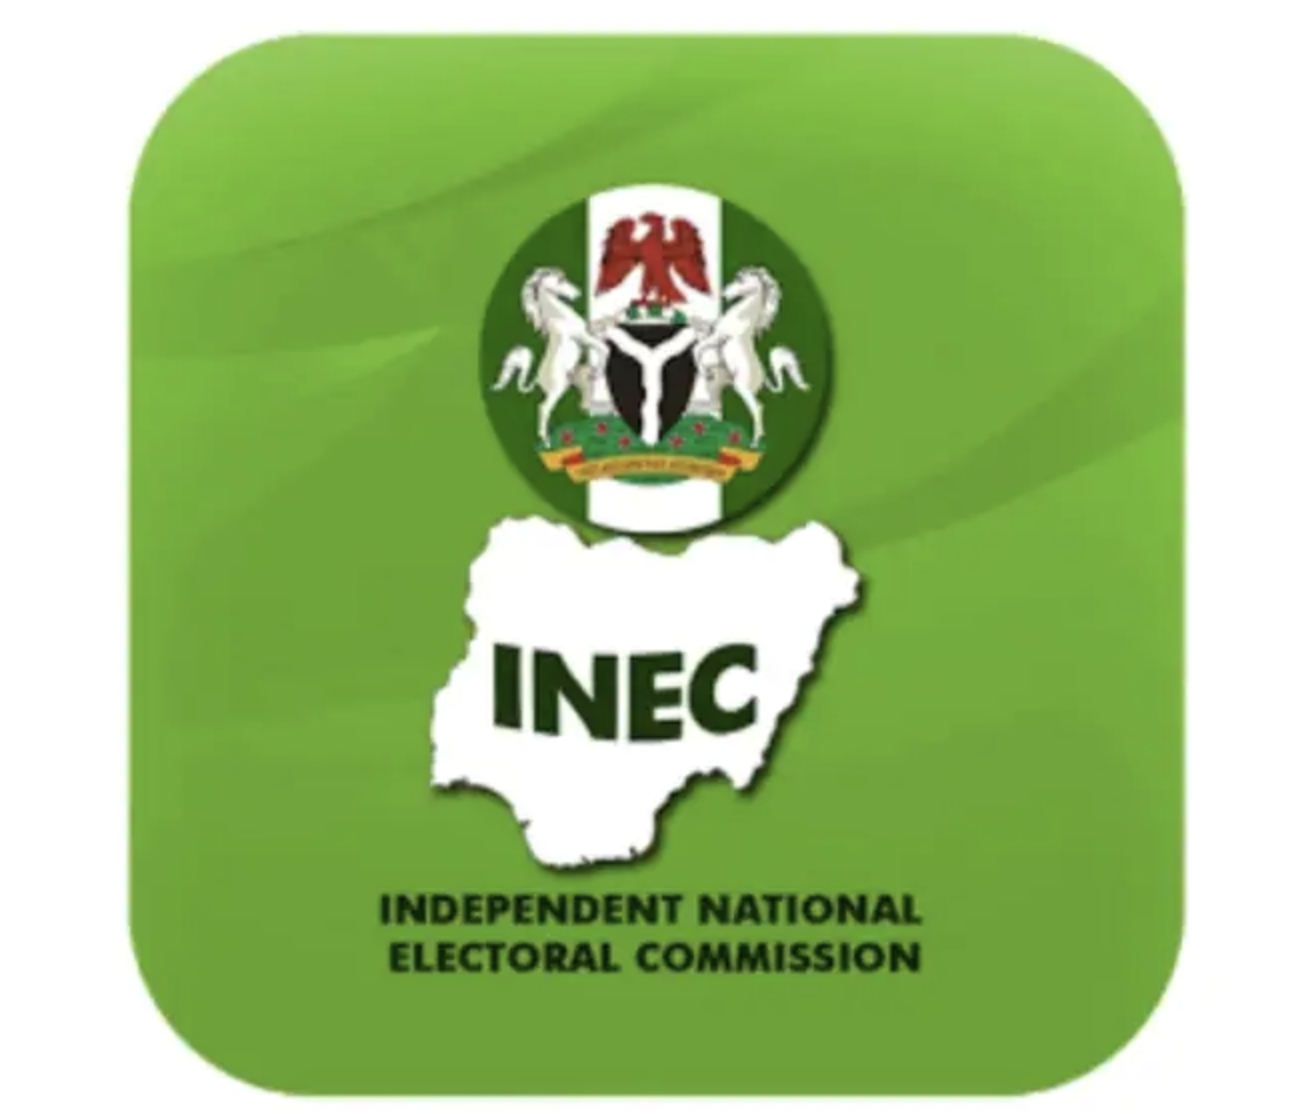 INEC Exam Recruitment Questions 2020 and Answers PDF Download ...